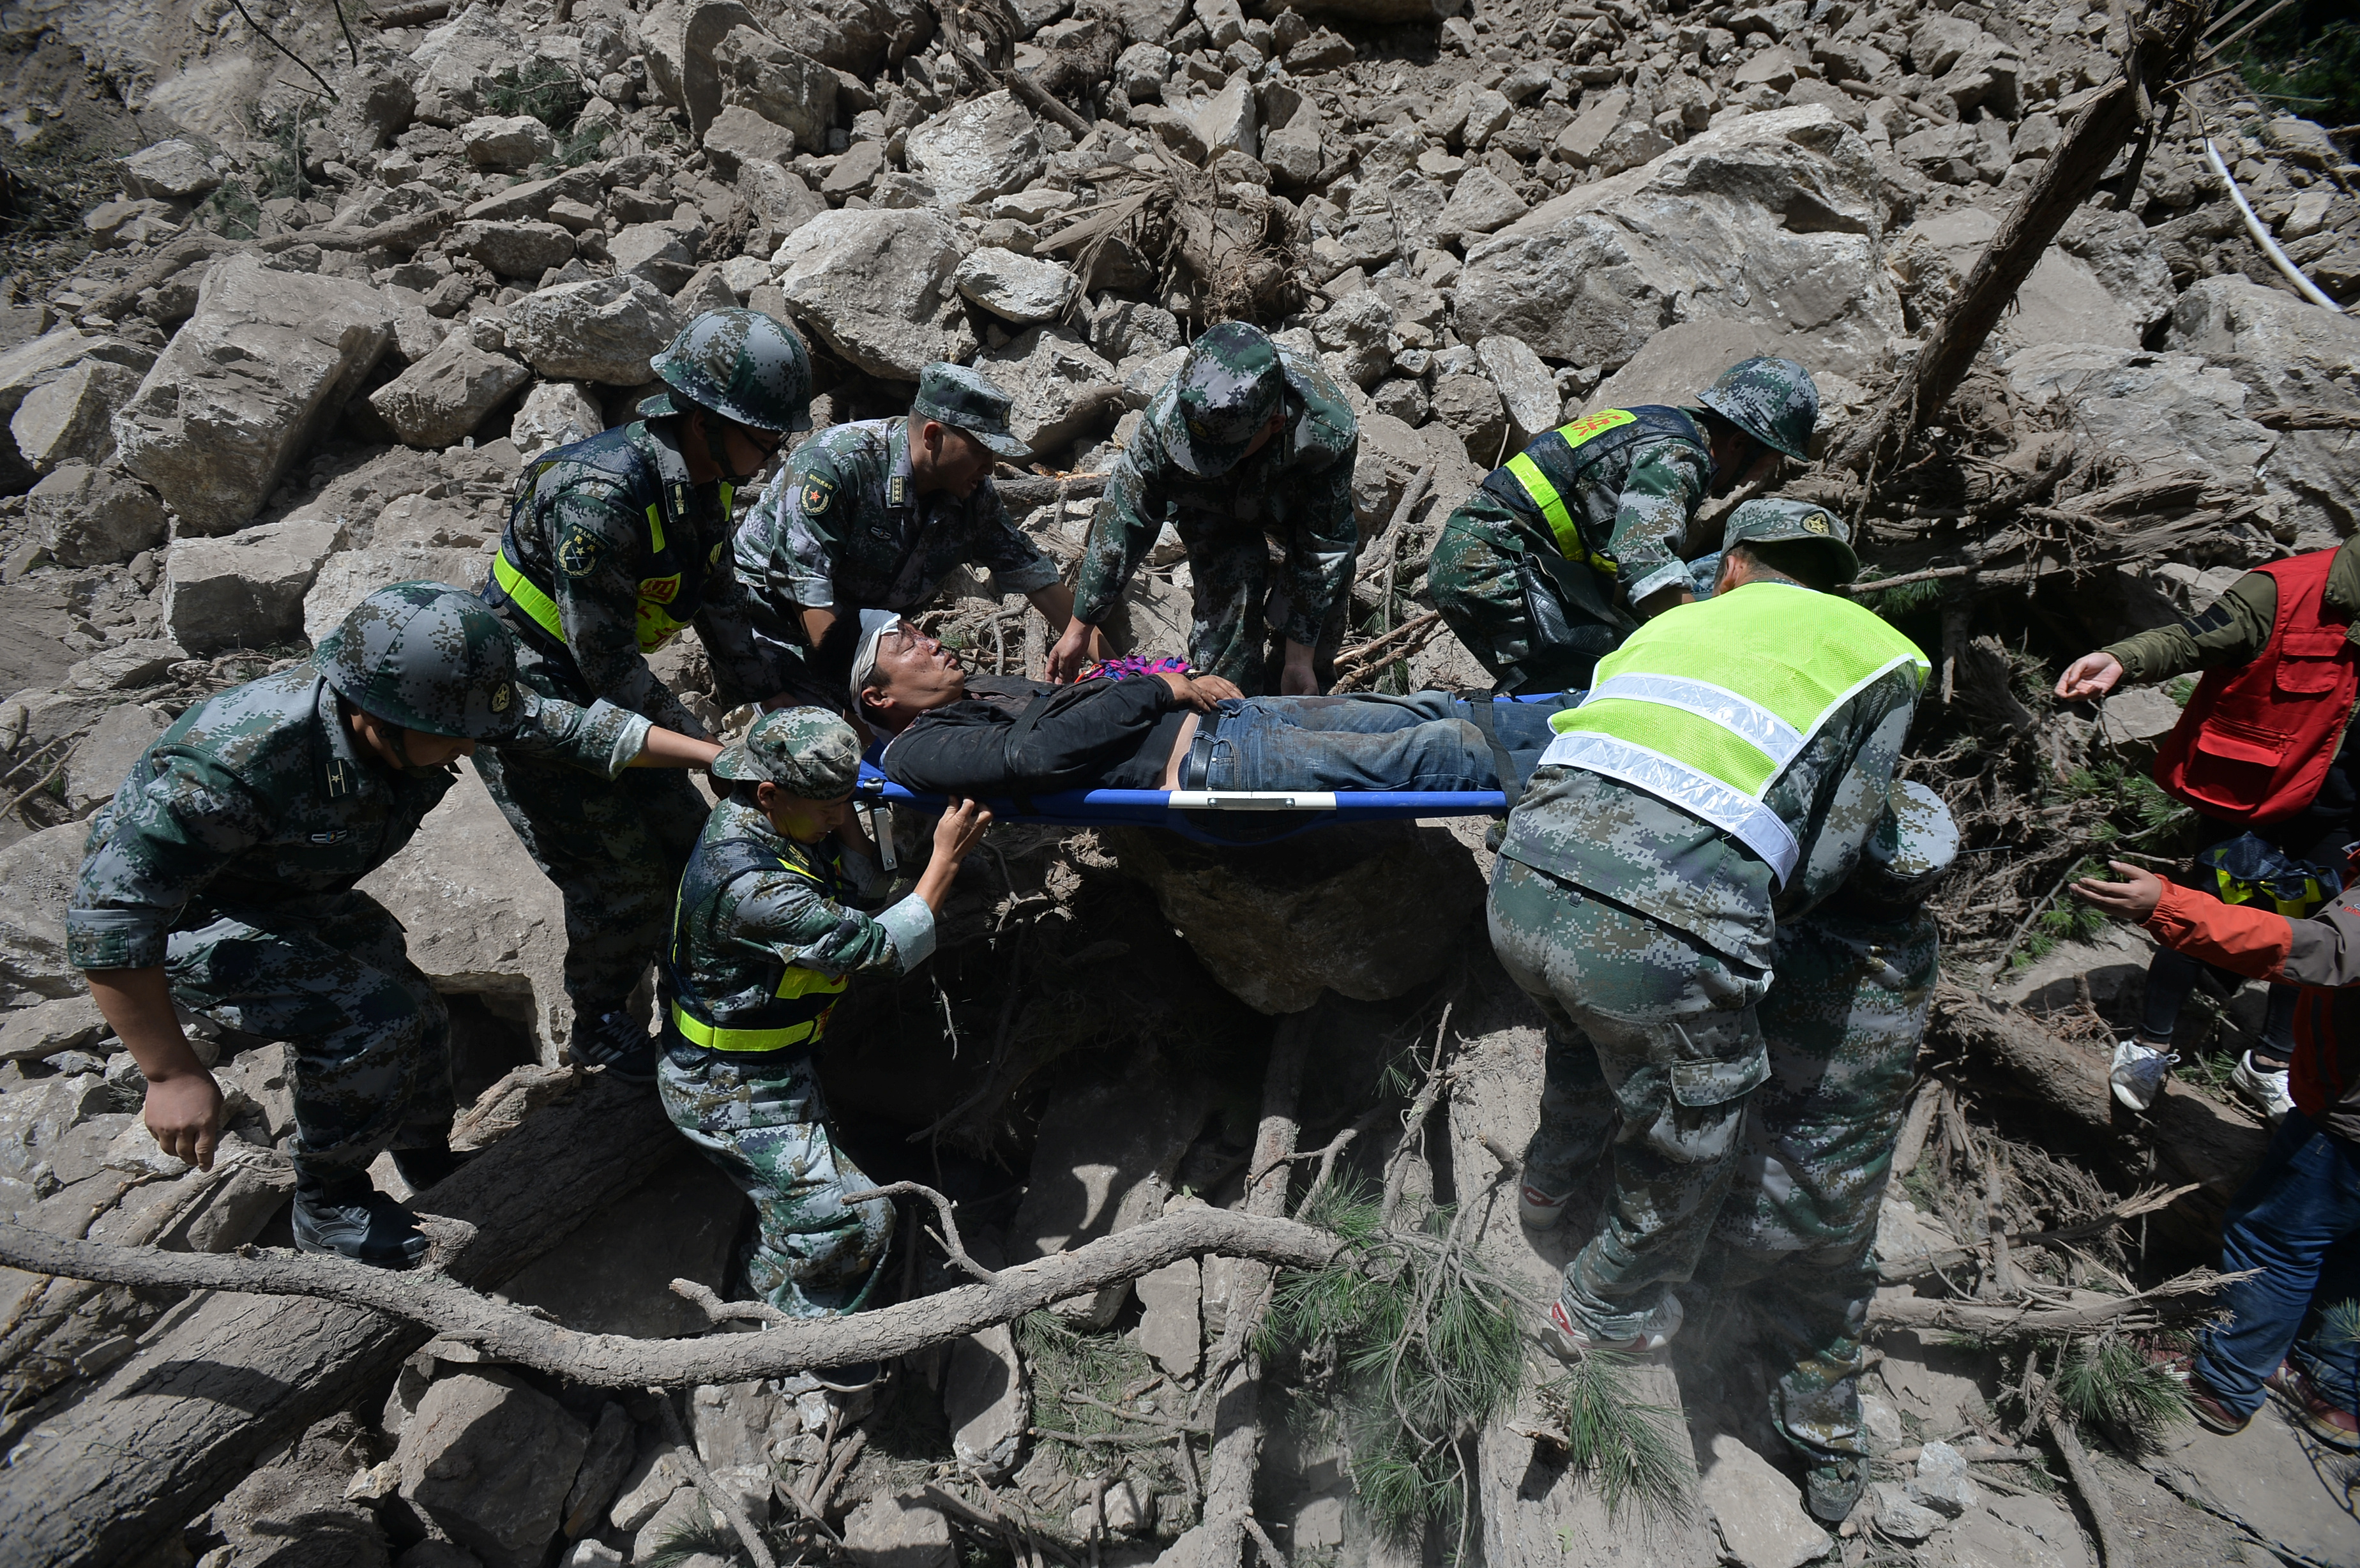 Chinese paramilitary police carry a survivor after an earthquake in Jiuzhaigou county, Ngawa prefecture, Sichuan province, China on Aug. 9, 2017.